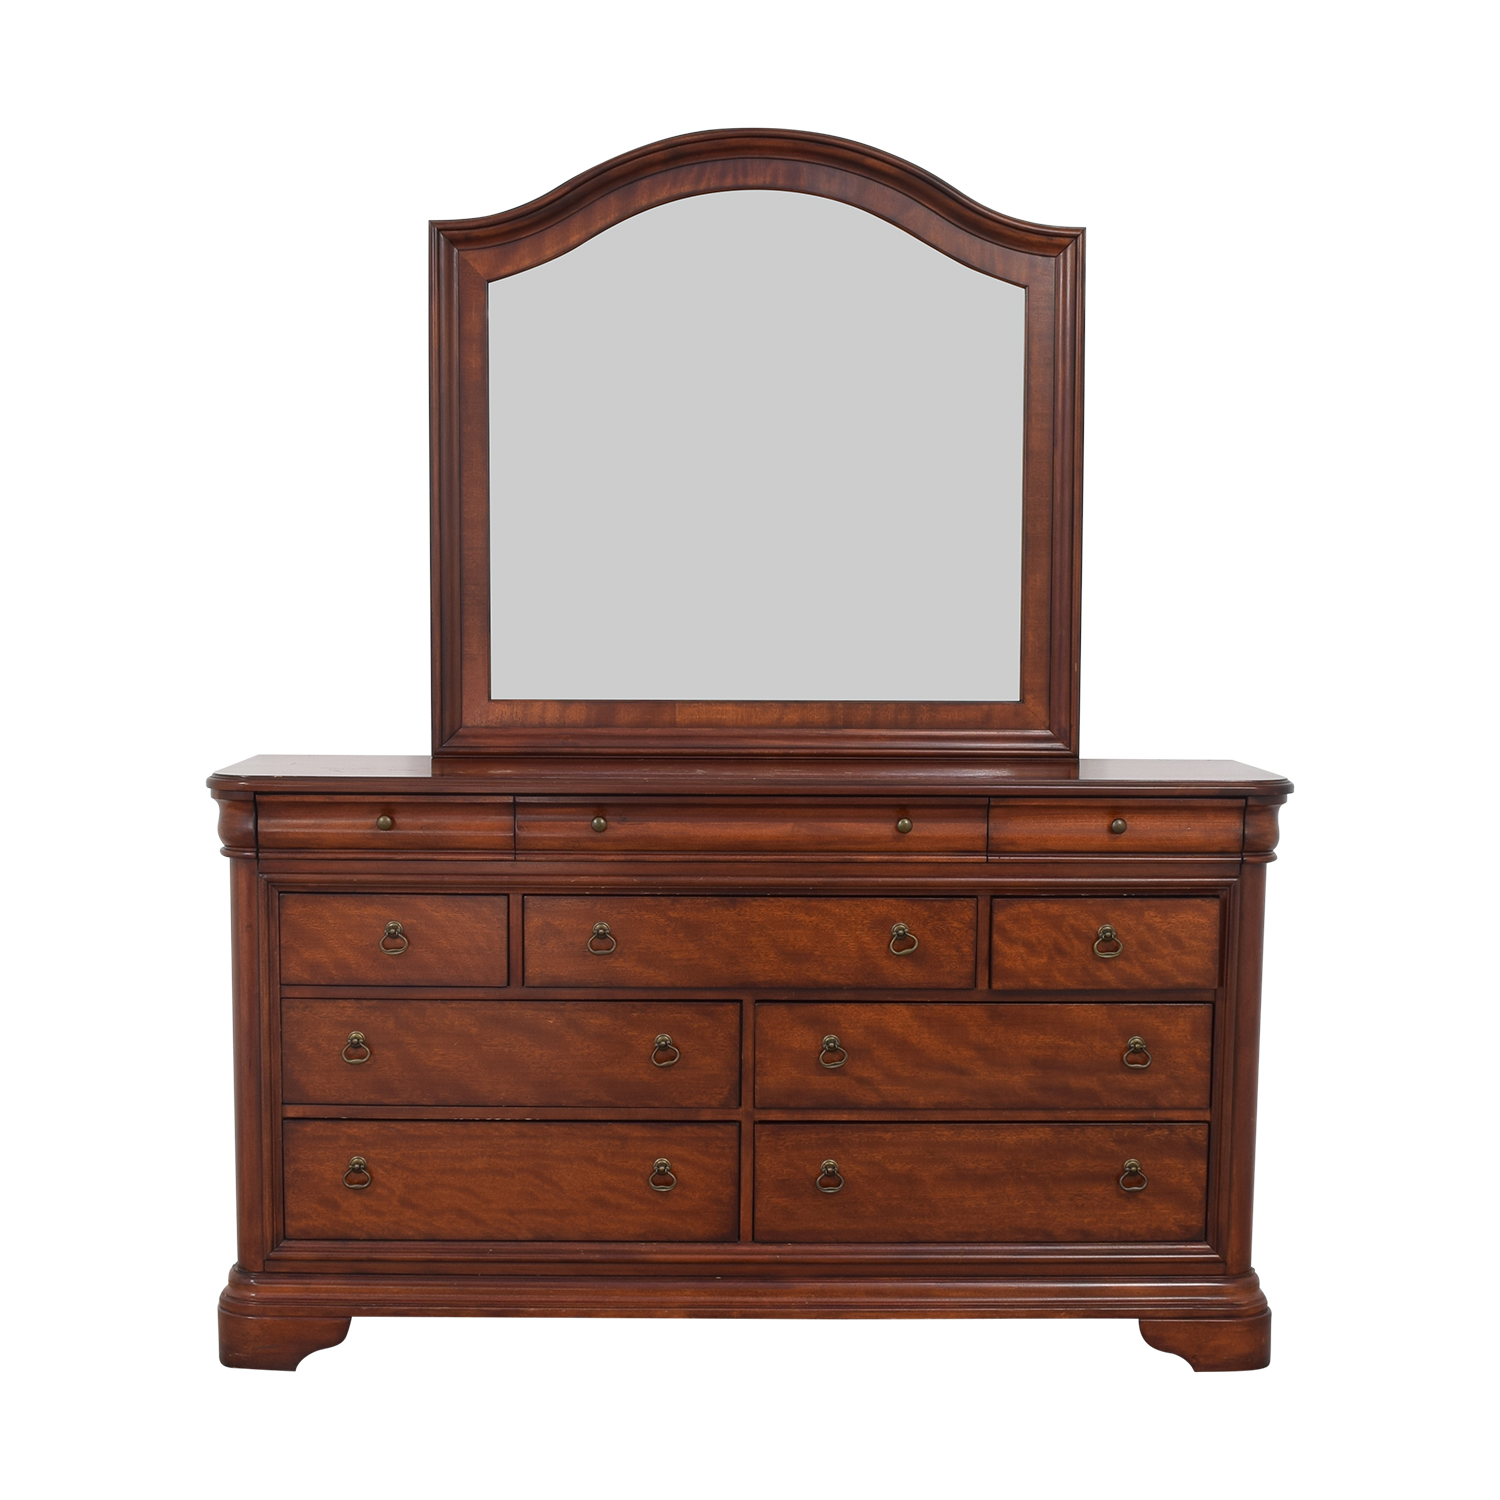 buy Macy's Macy's Bordeaux II Ten Drawer Dresser with Mirror online